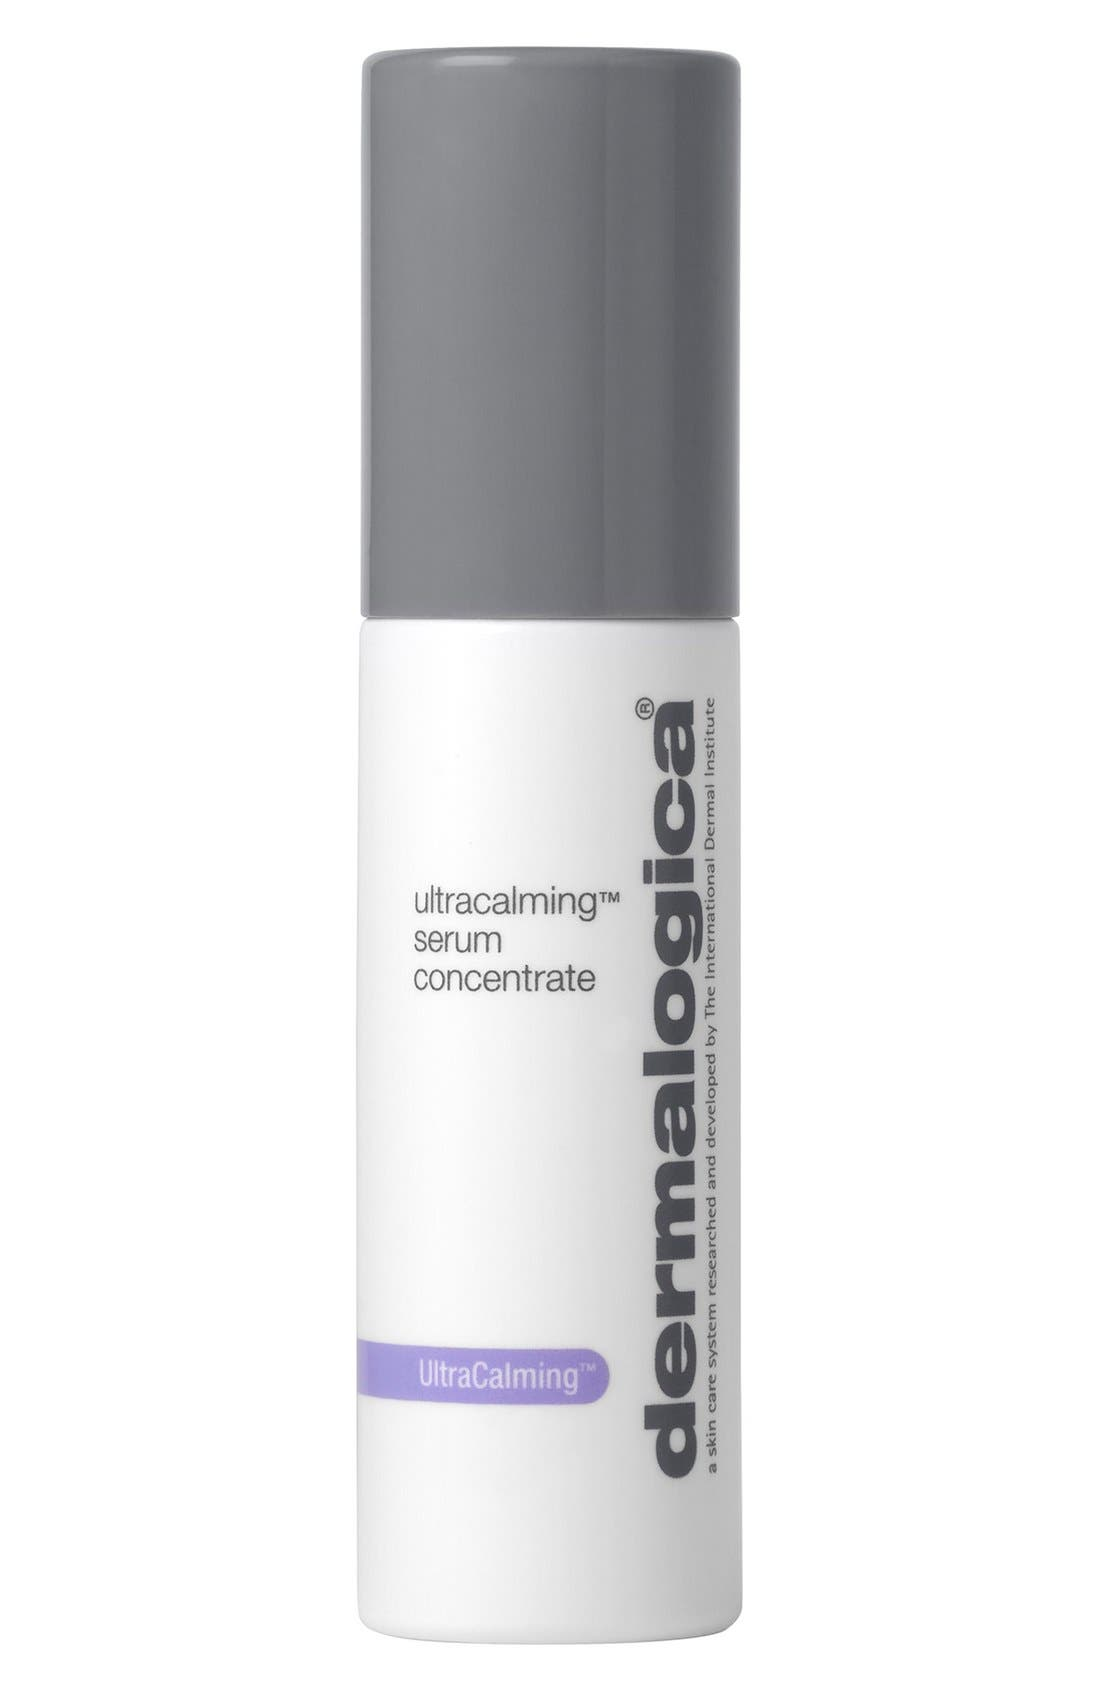 dermalogica® UltraCalming™ Serum Concentrate